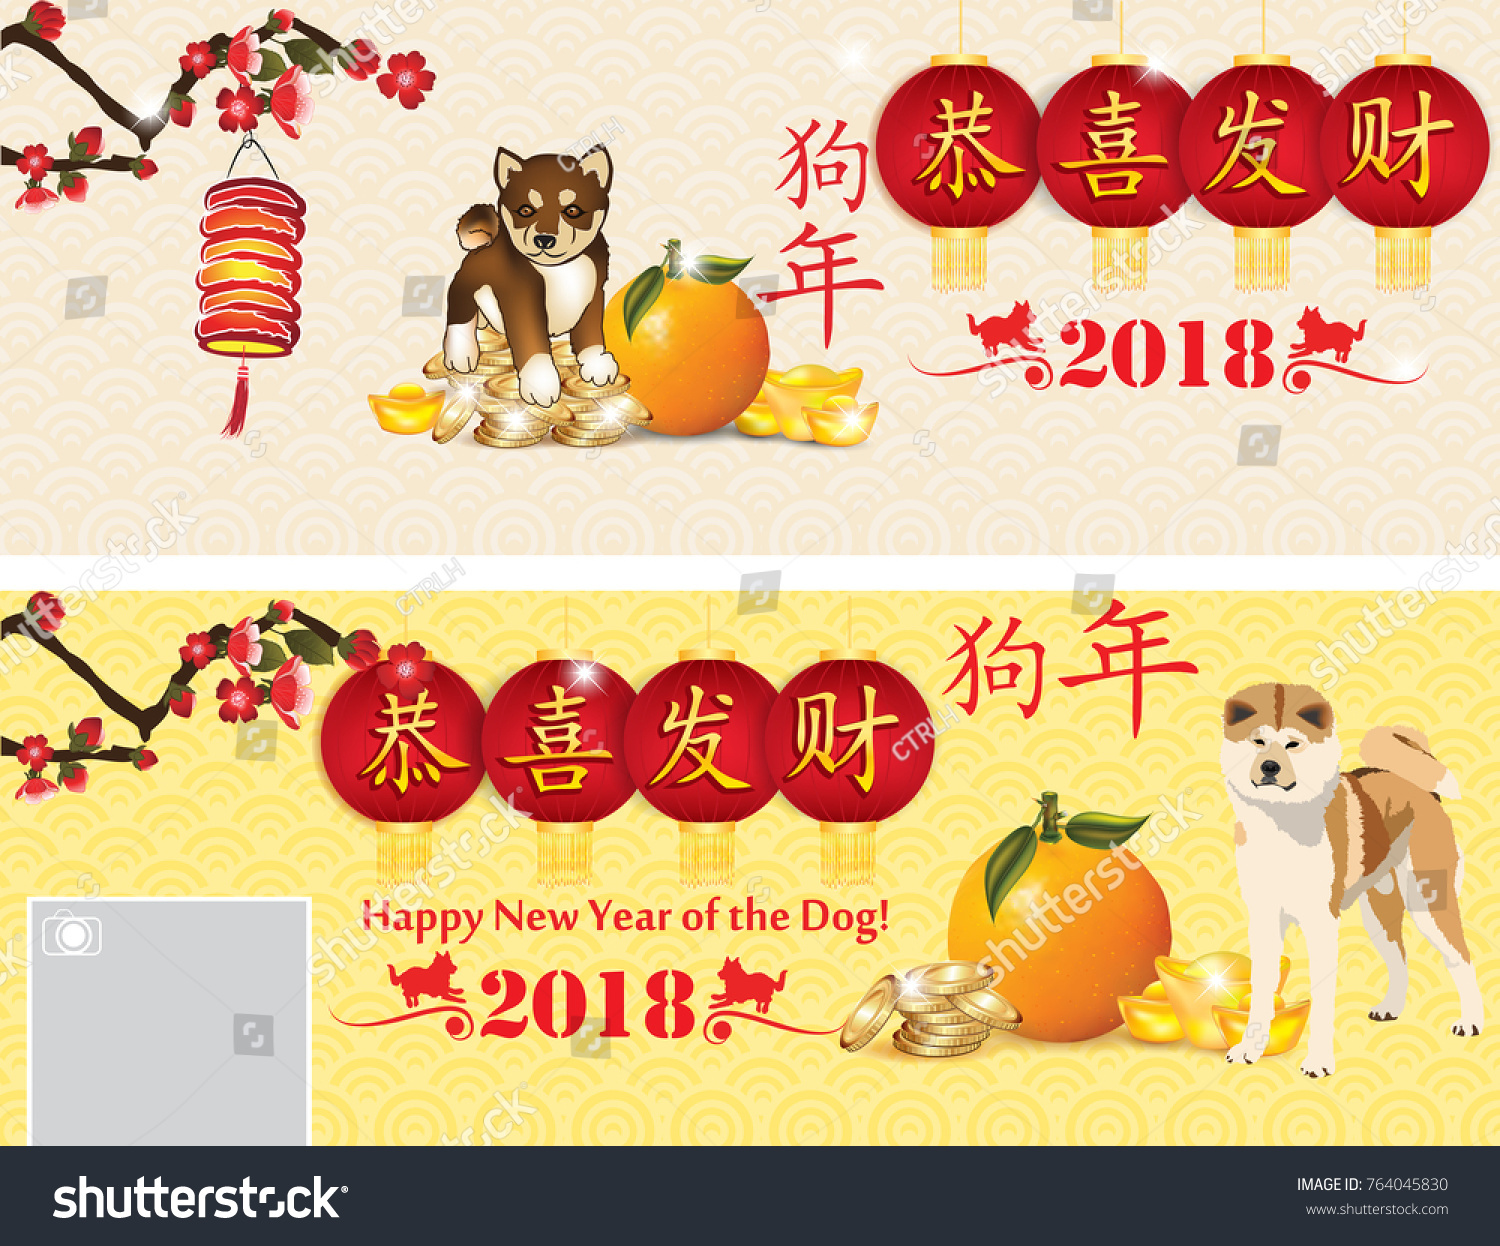 facebook set of two web banners 2018 designed for the celebration of the chinese new year